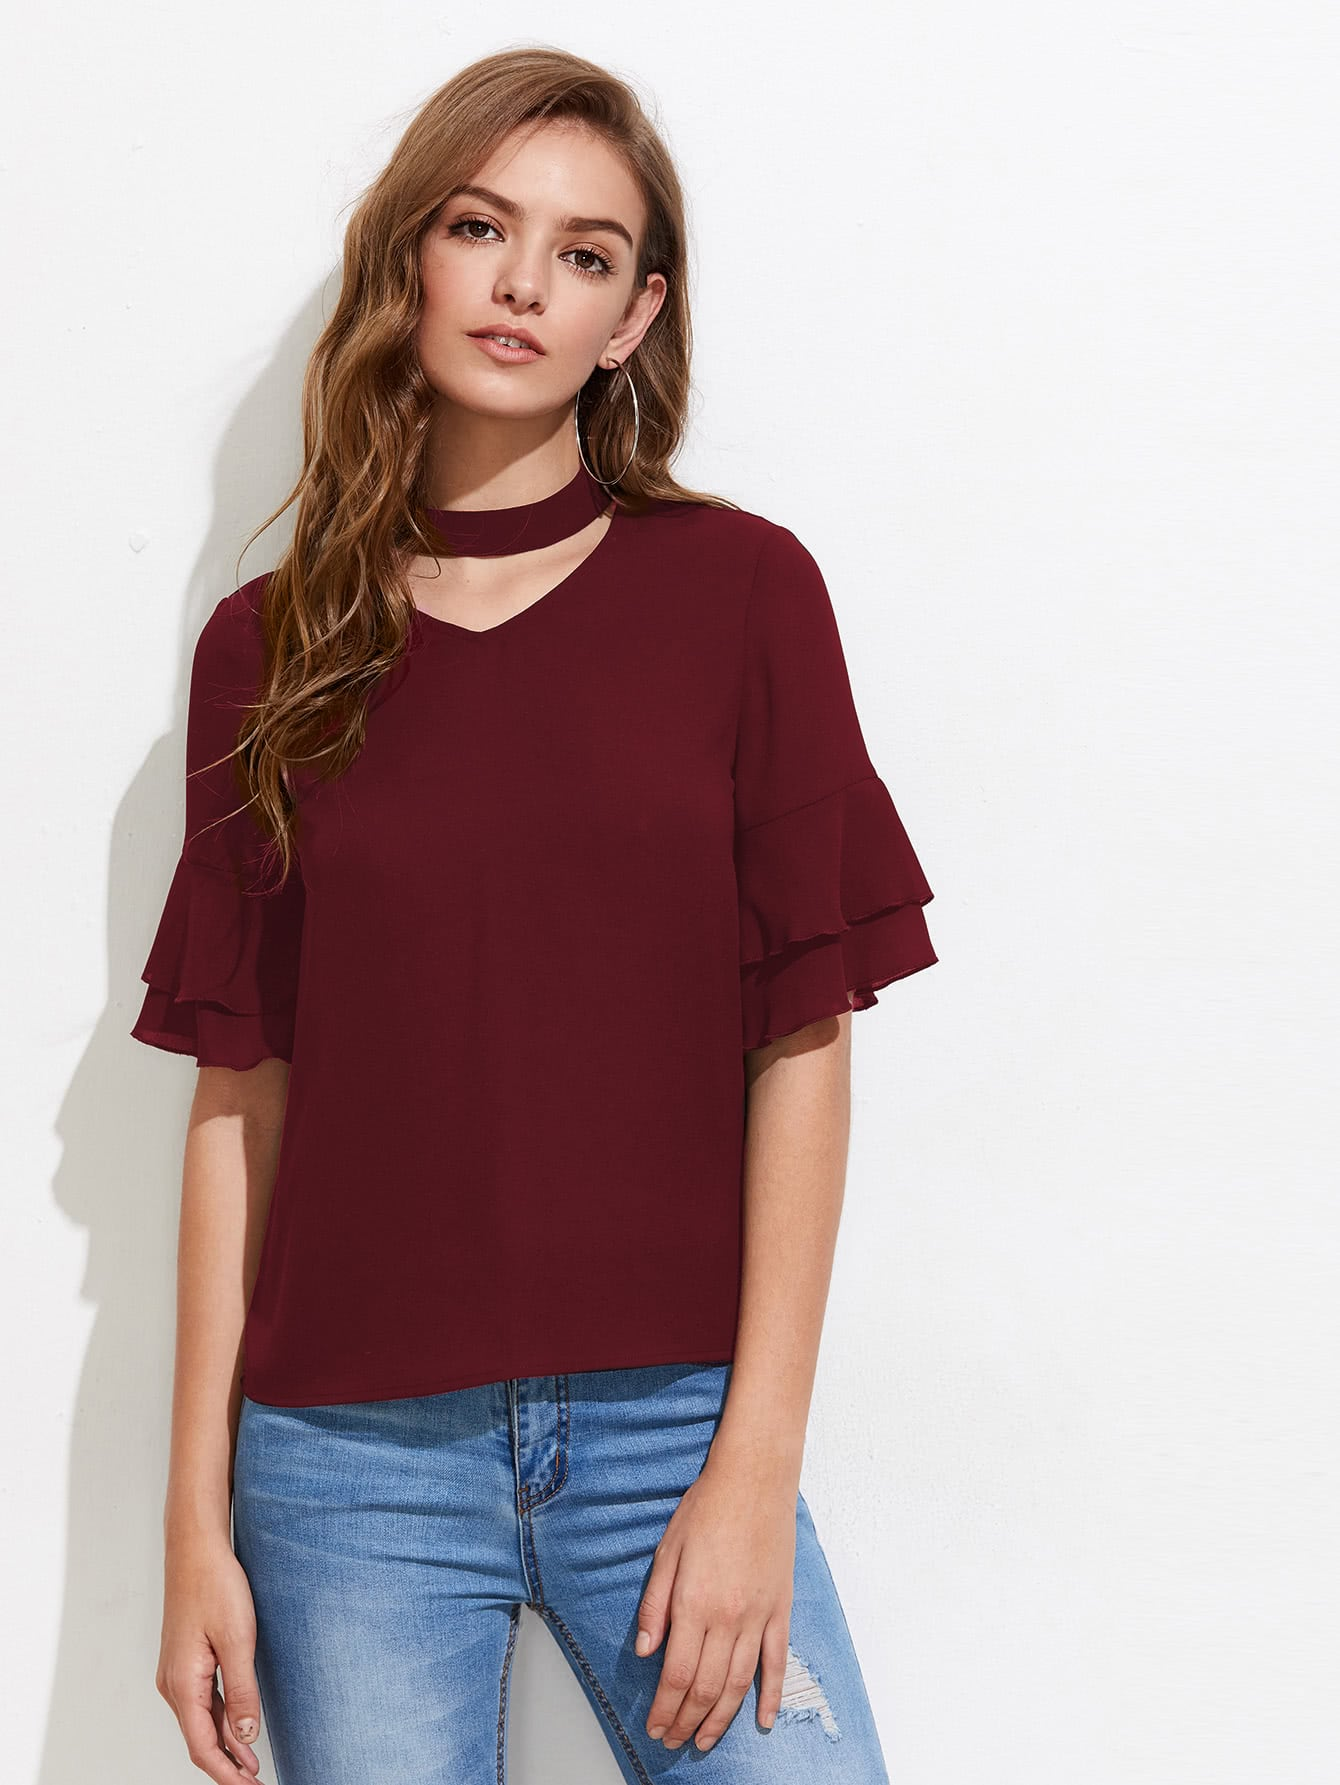 Choker Neck Layered Fluted Sleeve Top choker neck bishop sleeve floral top